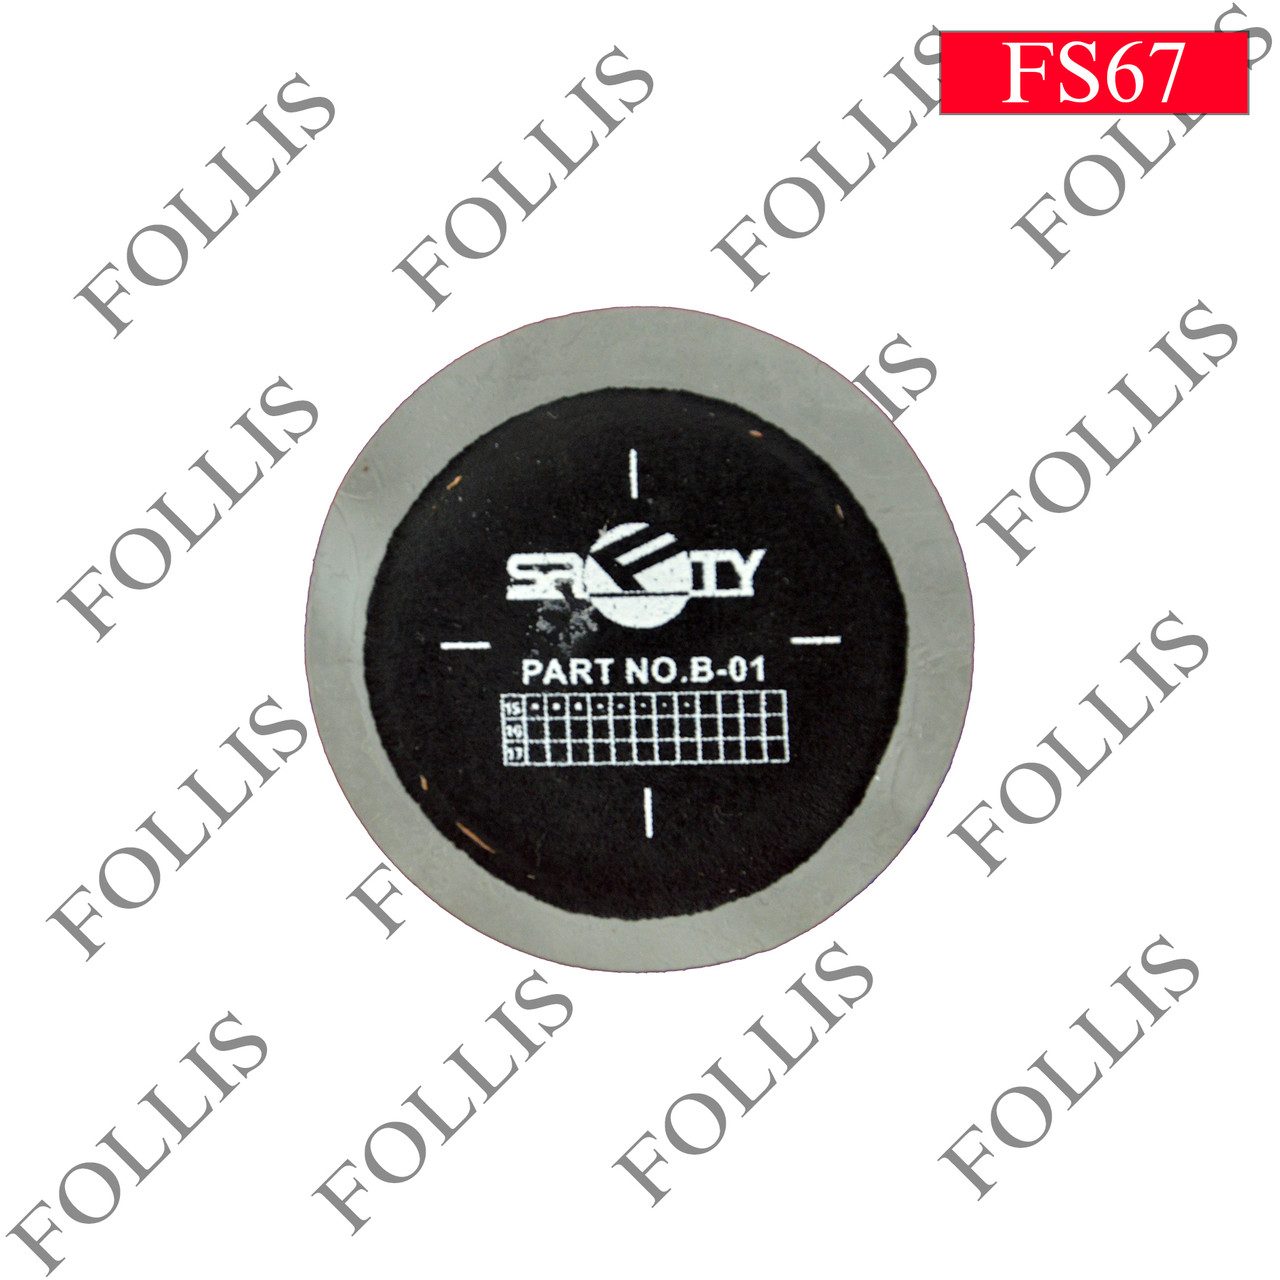 S-22 57mm (пачка)Round shape,grey and black mixed